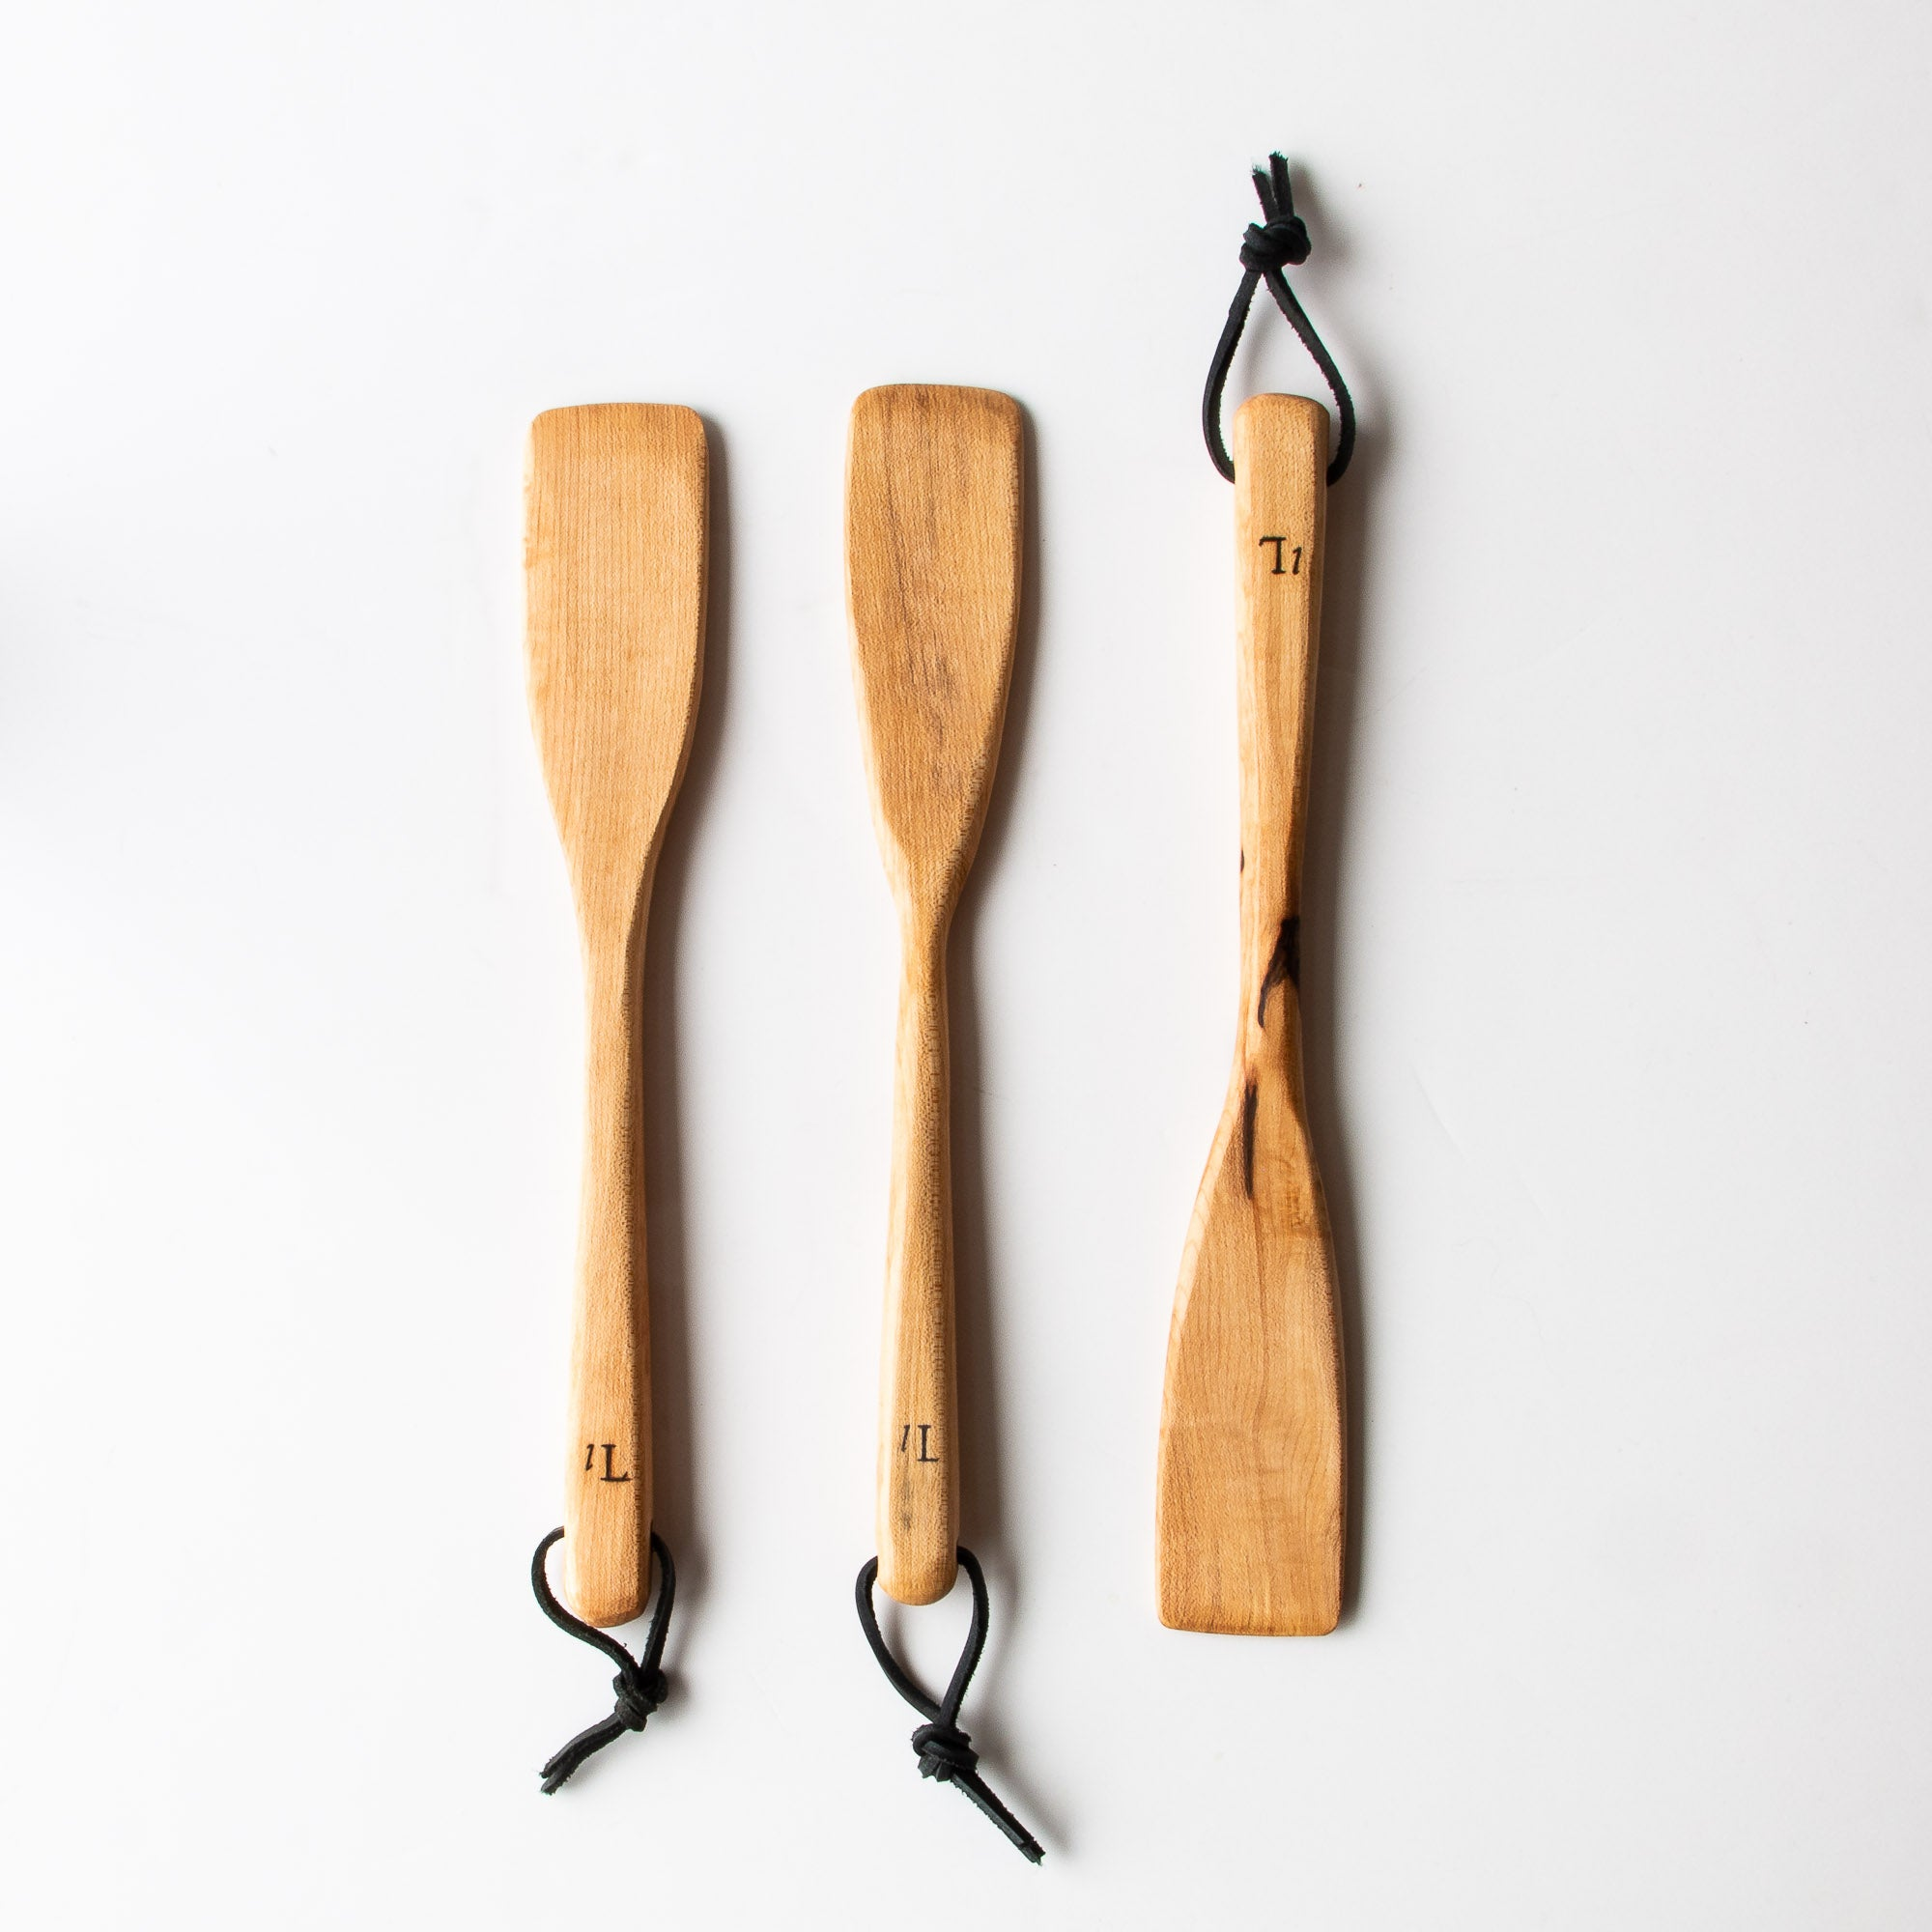 Three Handcrafted Everyday Spoons in Reclaimed Maple Wood - Sold by Chic & Basta